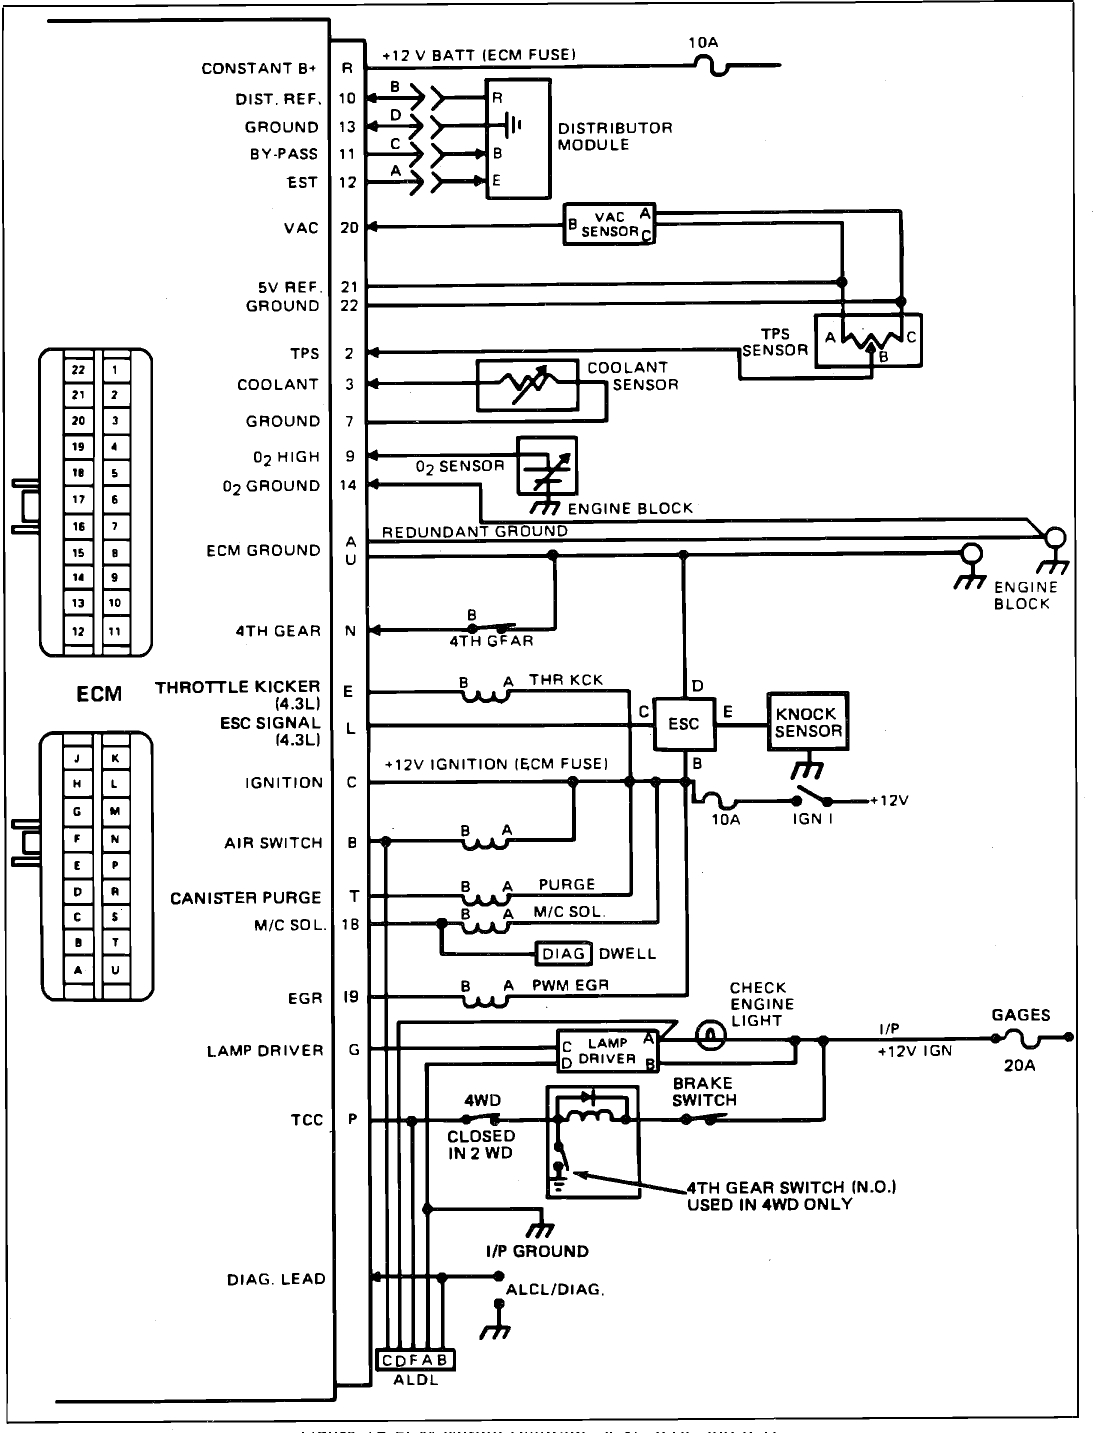 original i need a fuse box diagram with wiring colors 1984 Chevy K-Series Fuse Box at bakdesigns.co